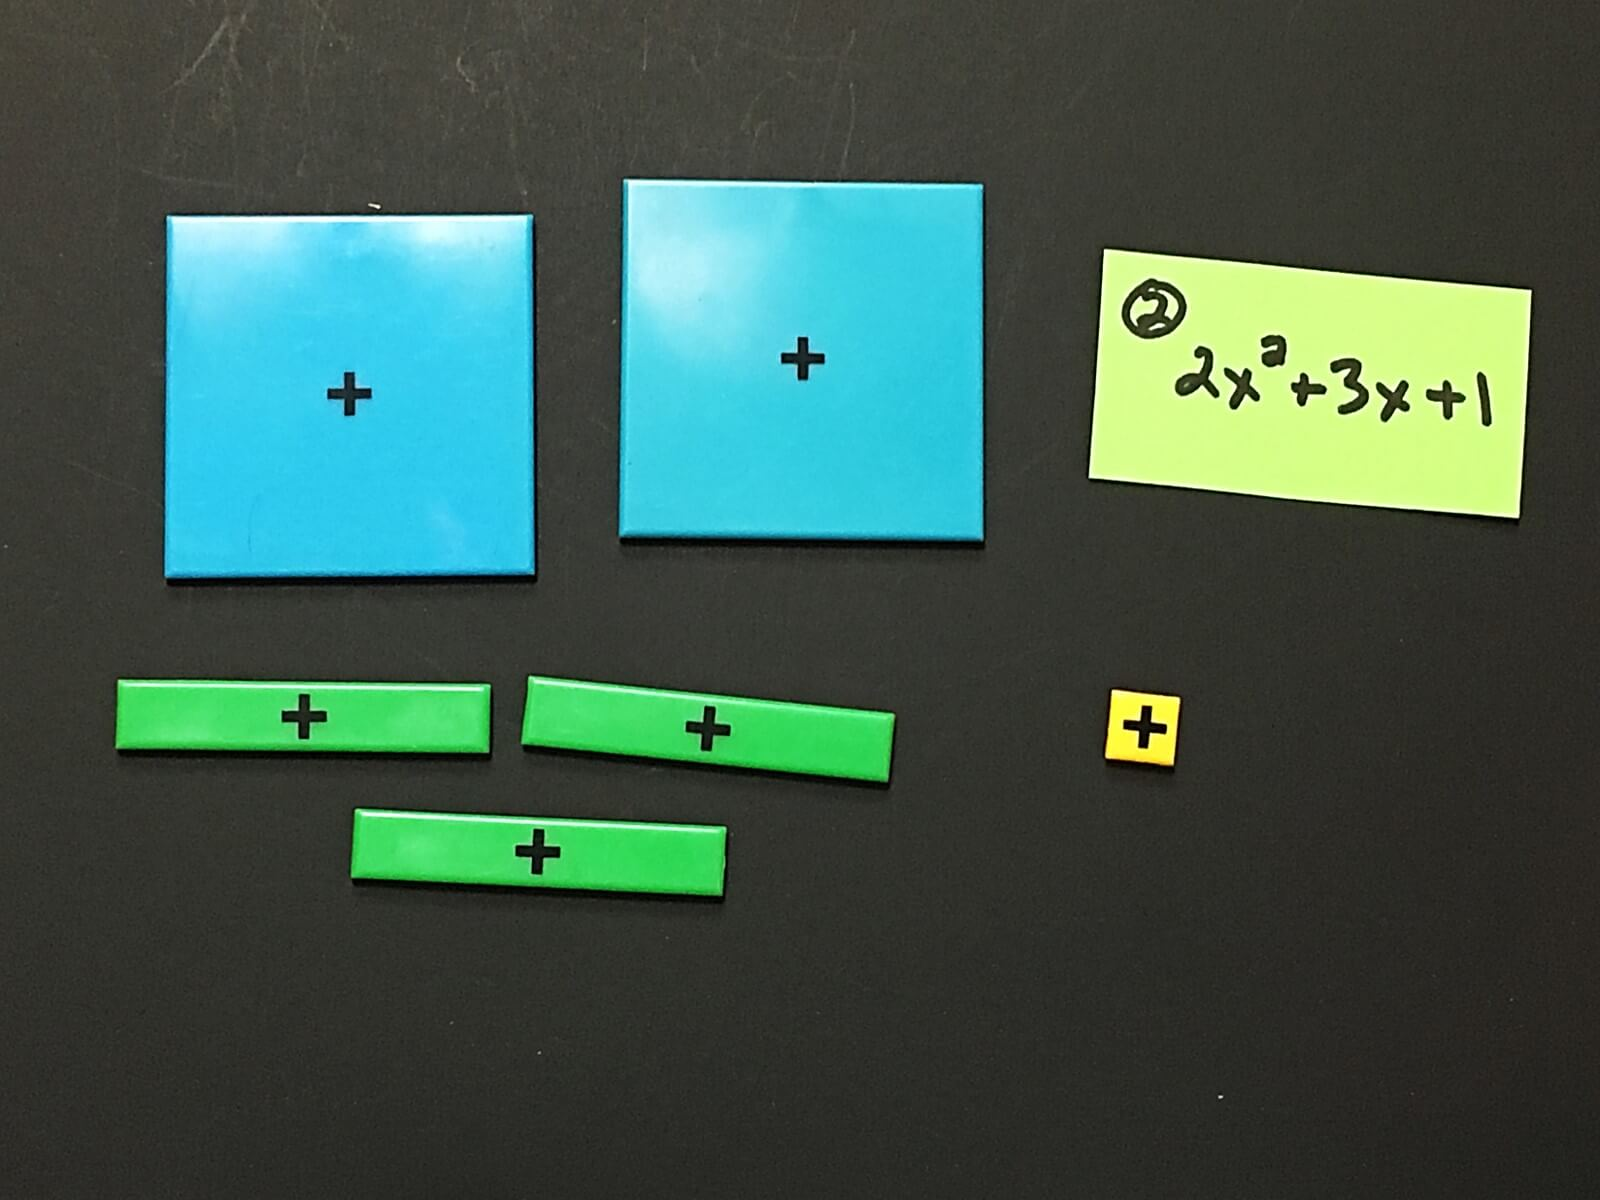 Scaffolded Math And Science How To Use Algebra Tiles To Factor